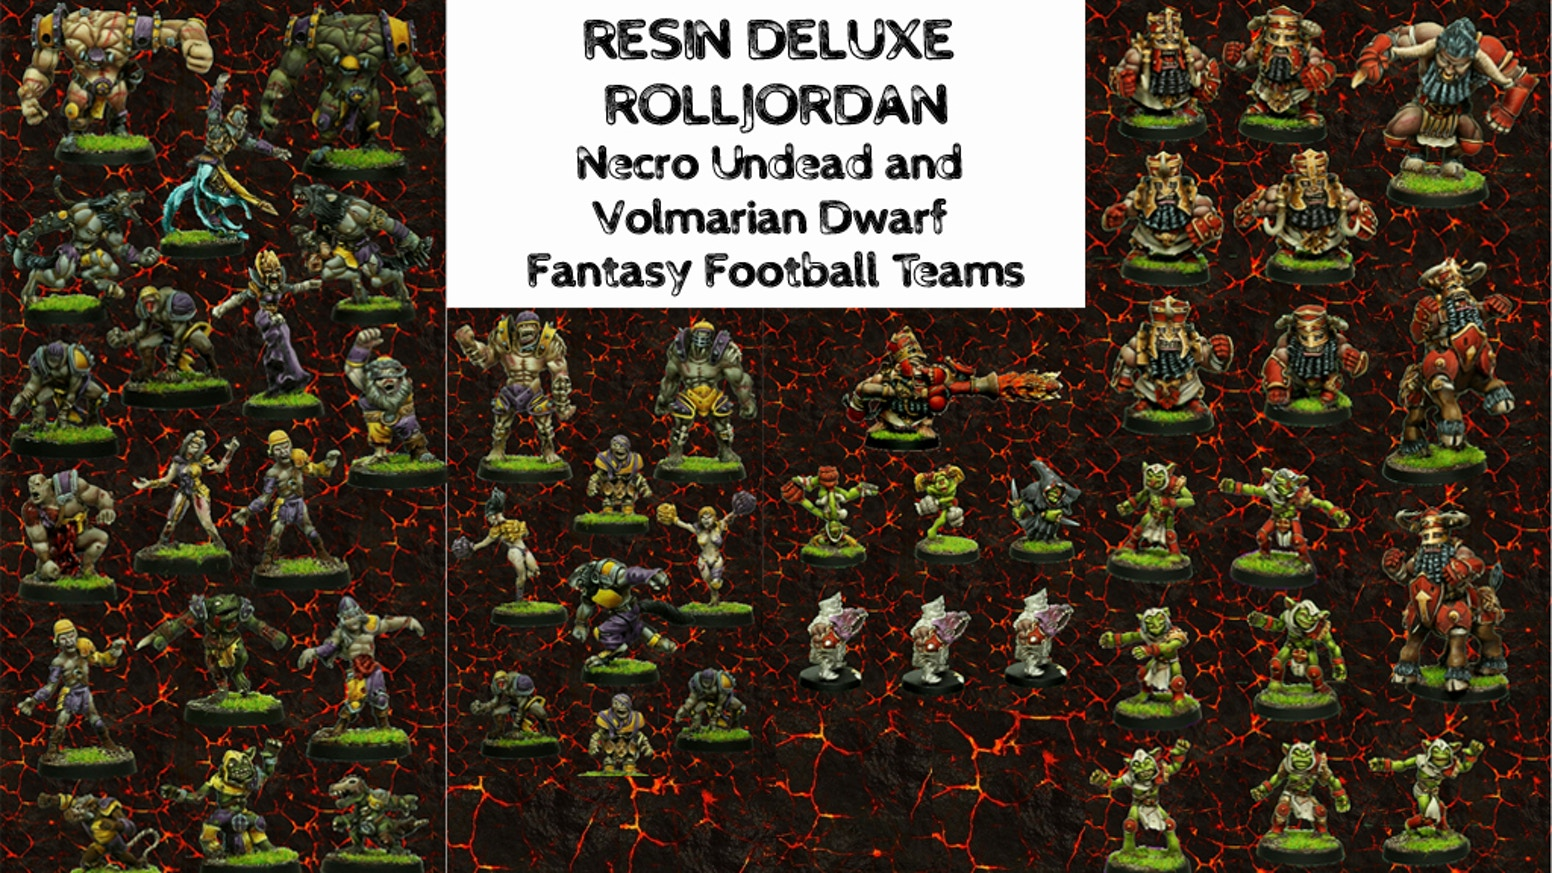 Bringing 2 more of the Rolljordan line of Fantasy Football teams in complete teams with sideline figures in affordable resin.